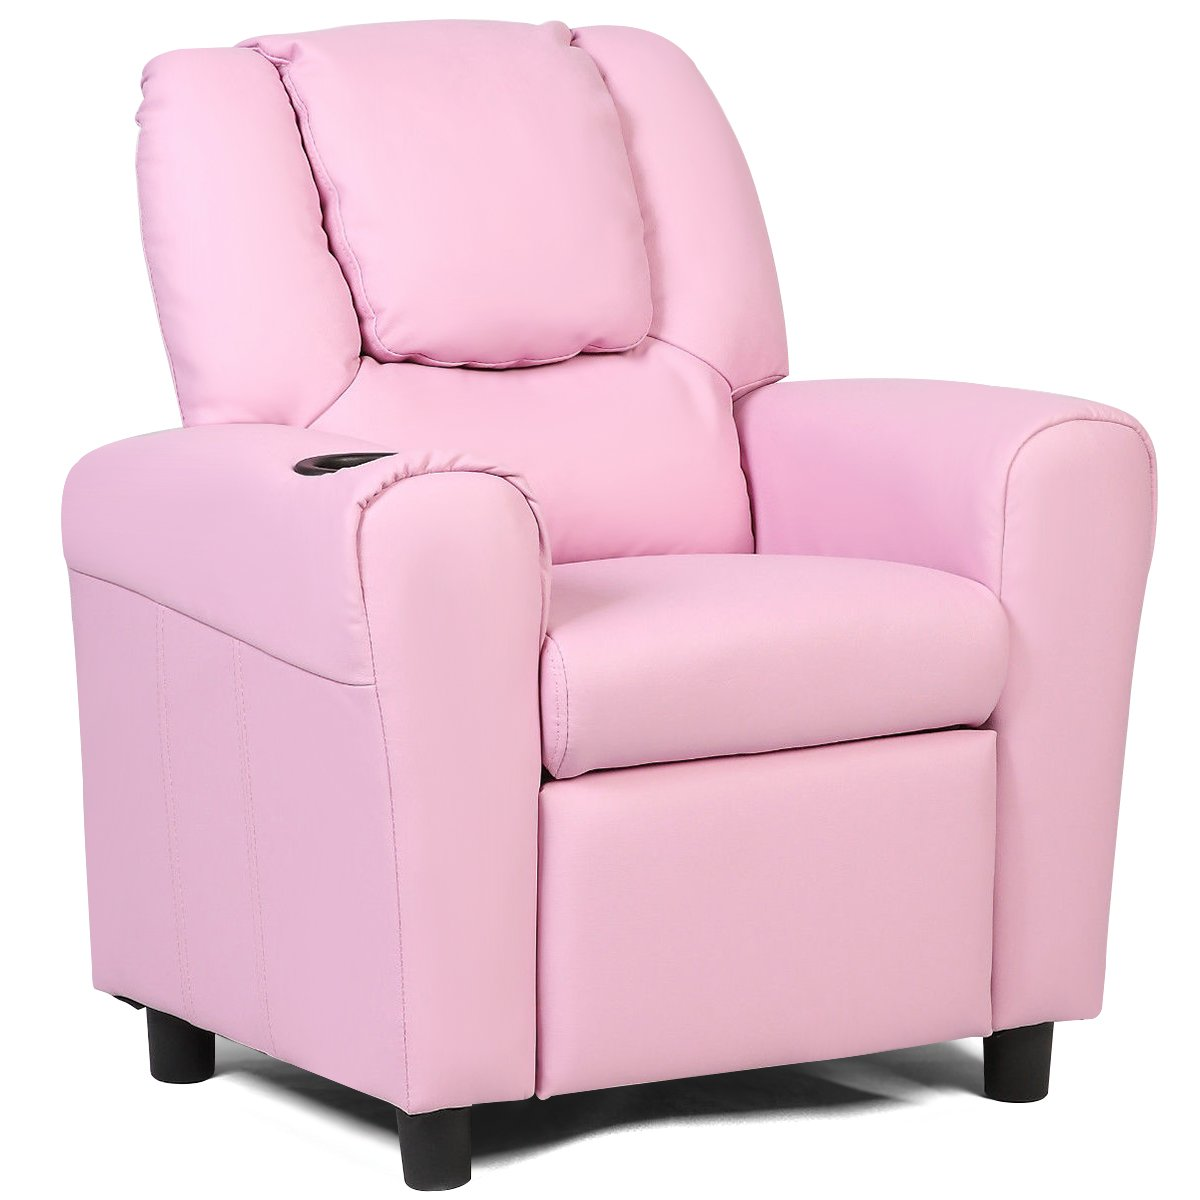 Amazon.com: Costzon Contemporary Kids Recliner, PU Leather Lounge Furniture  For Boys U0026 Girls W/Cup Holder, Children Sofa Chair (Pink): Kitchen U0026 Dining